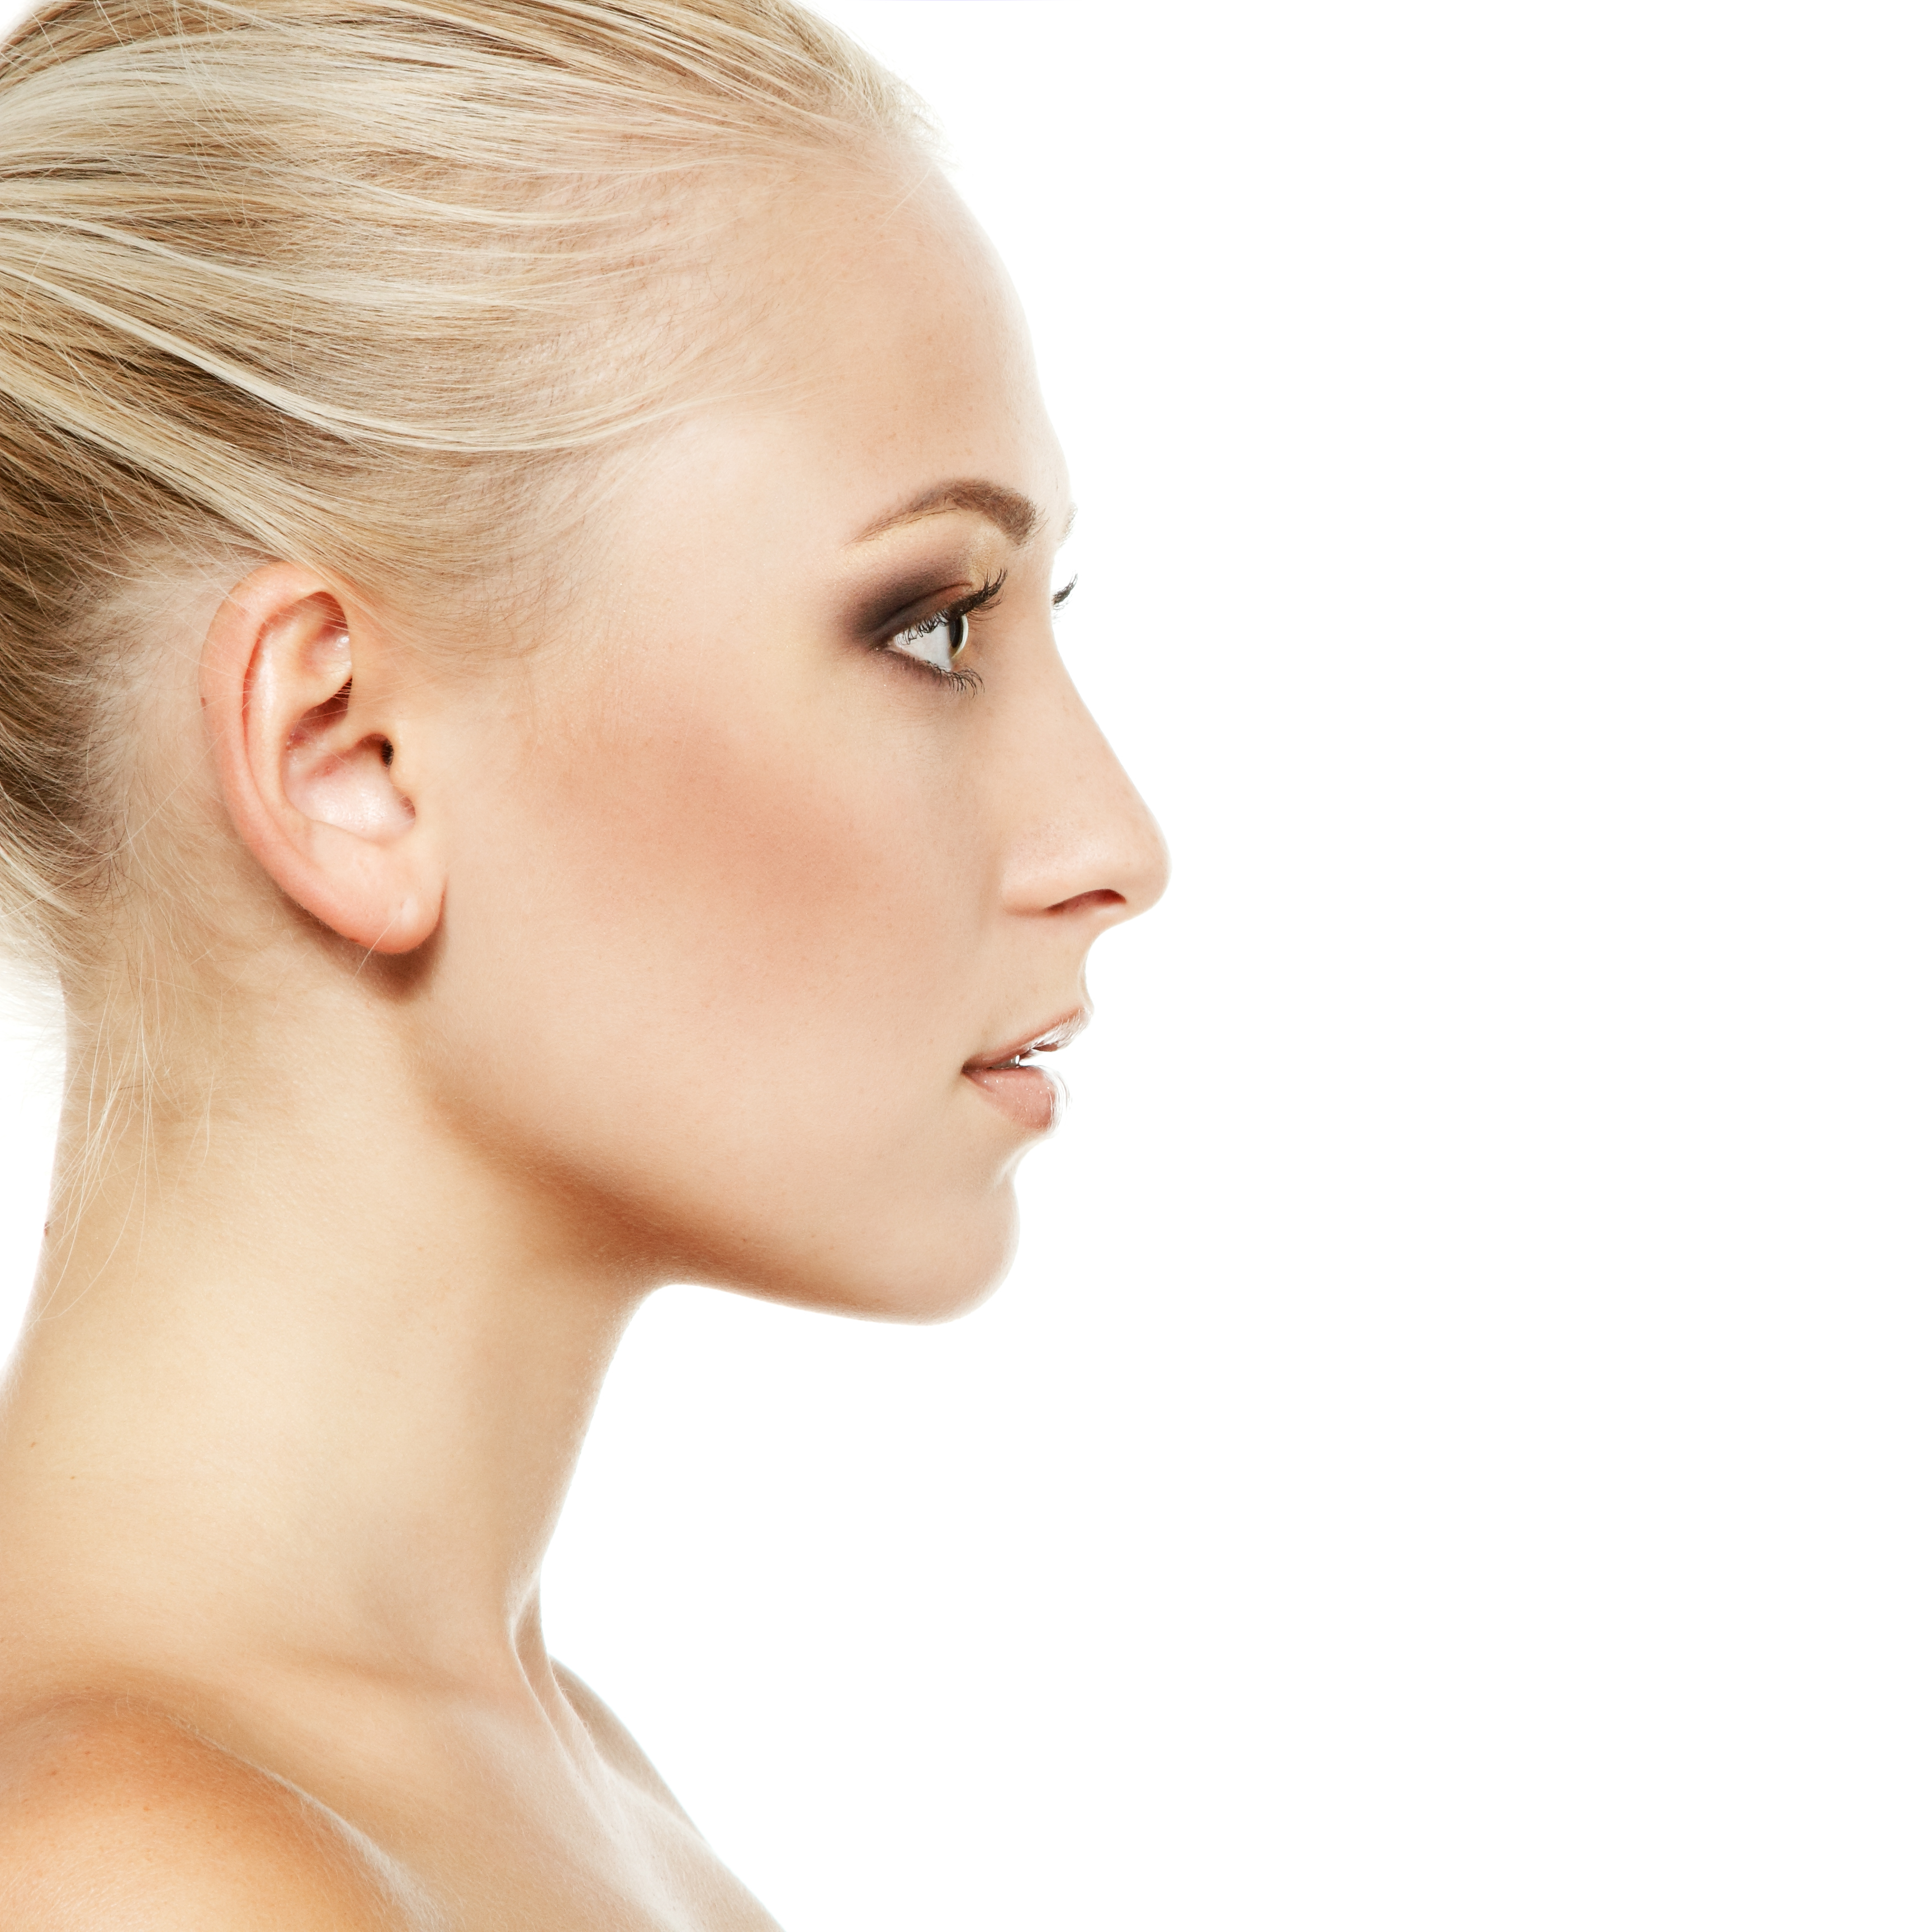 Roseville facial plastic surgery